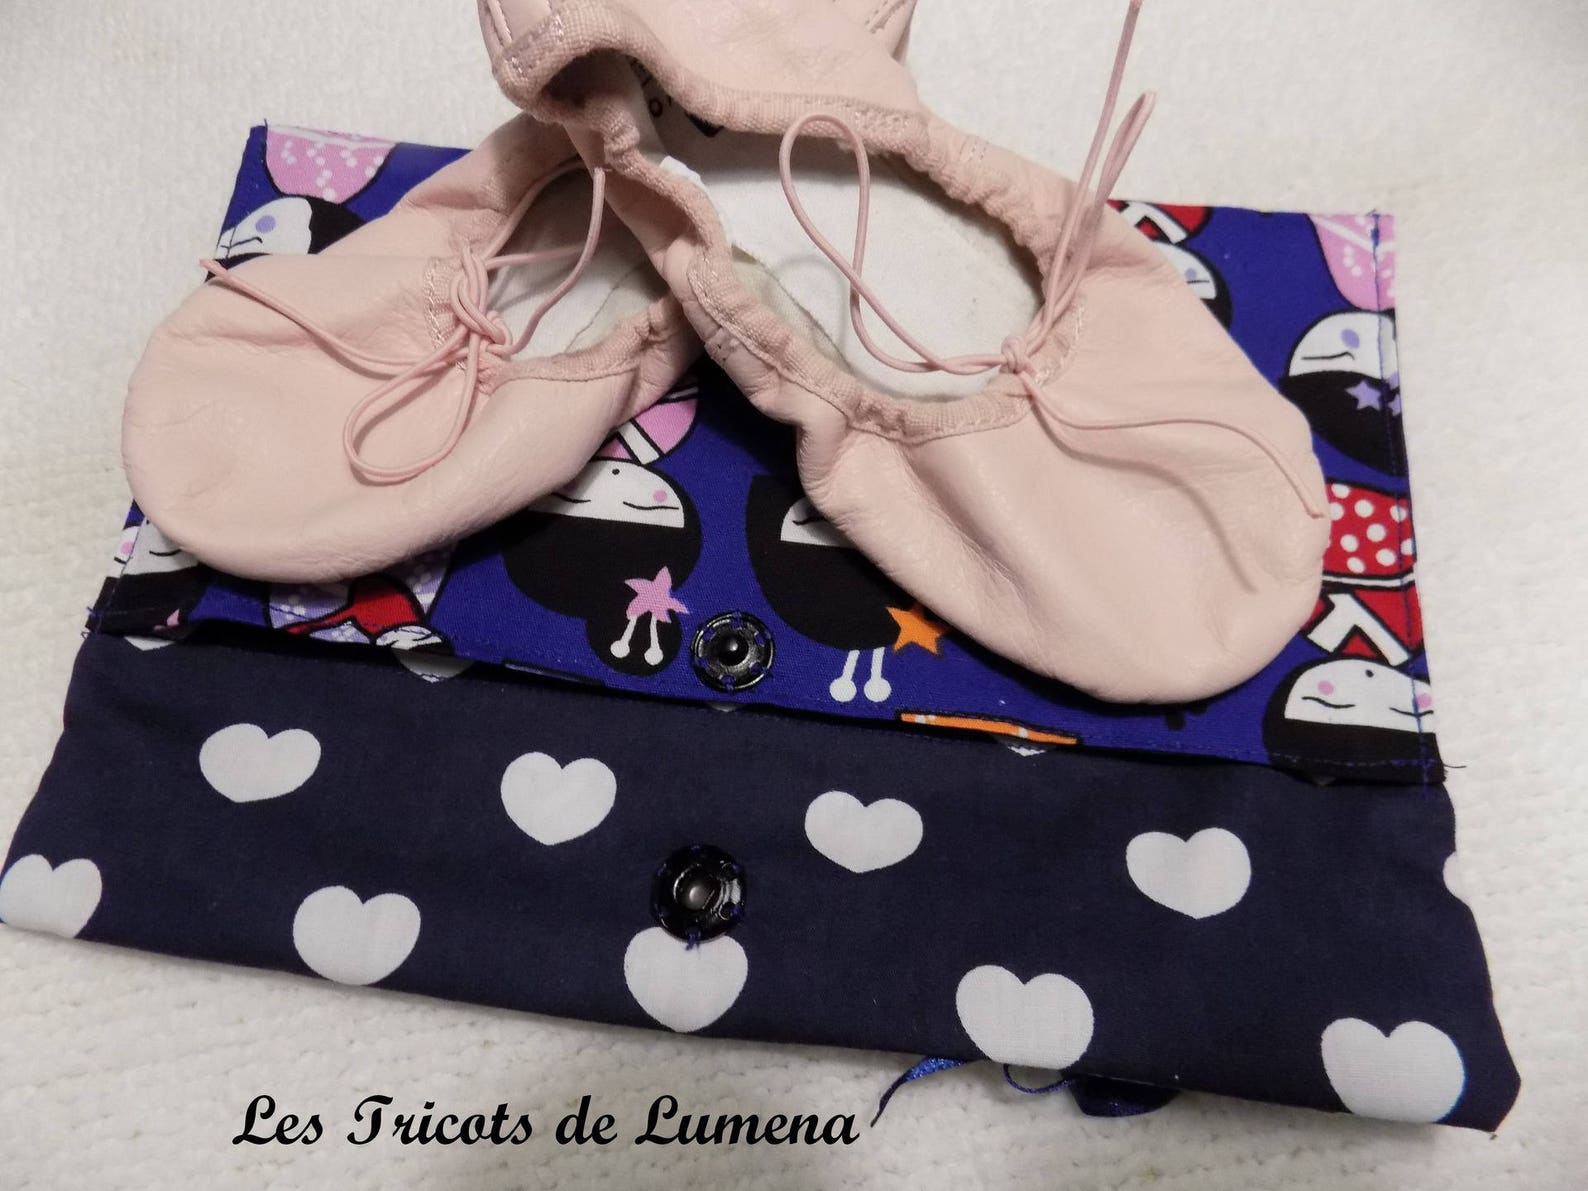 storage pouch handmade custom made for ballet shoes, storage, storage bag